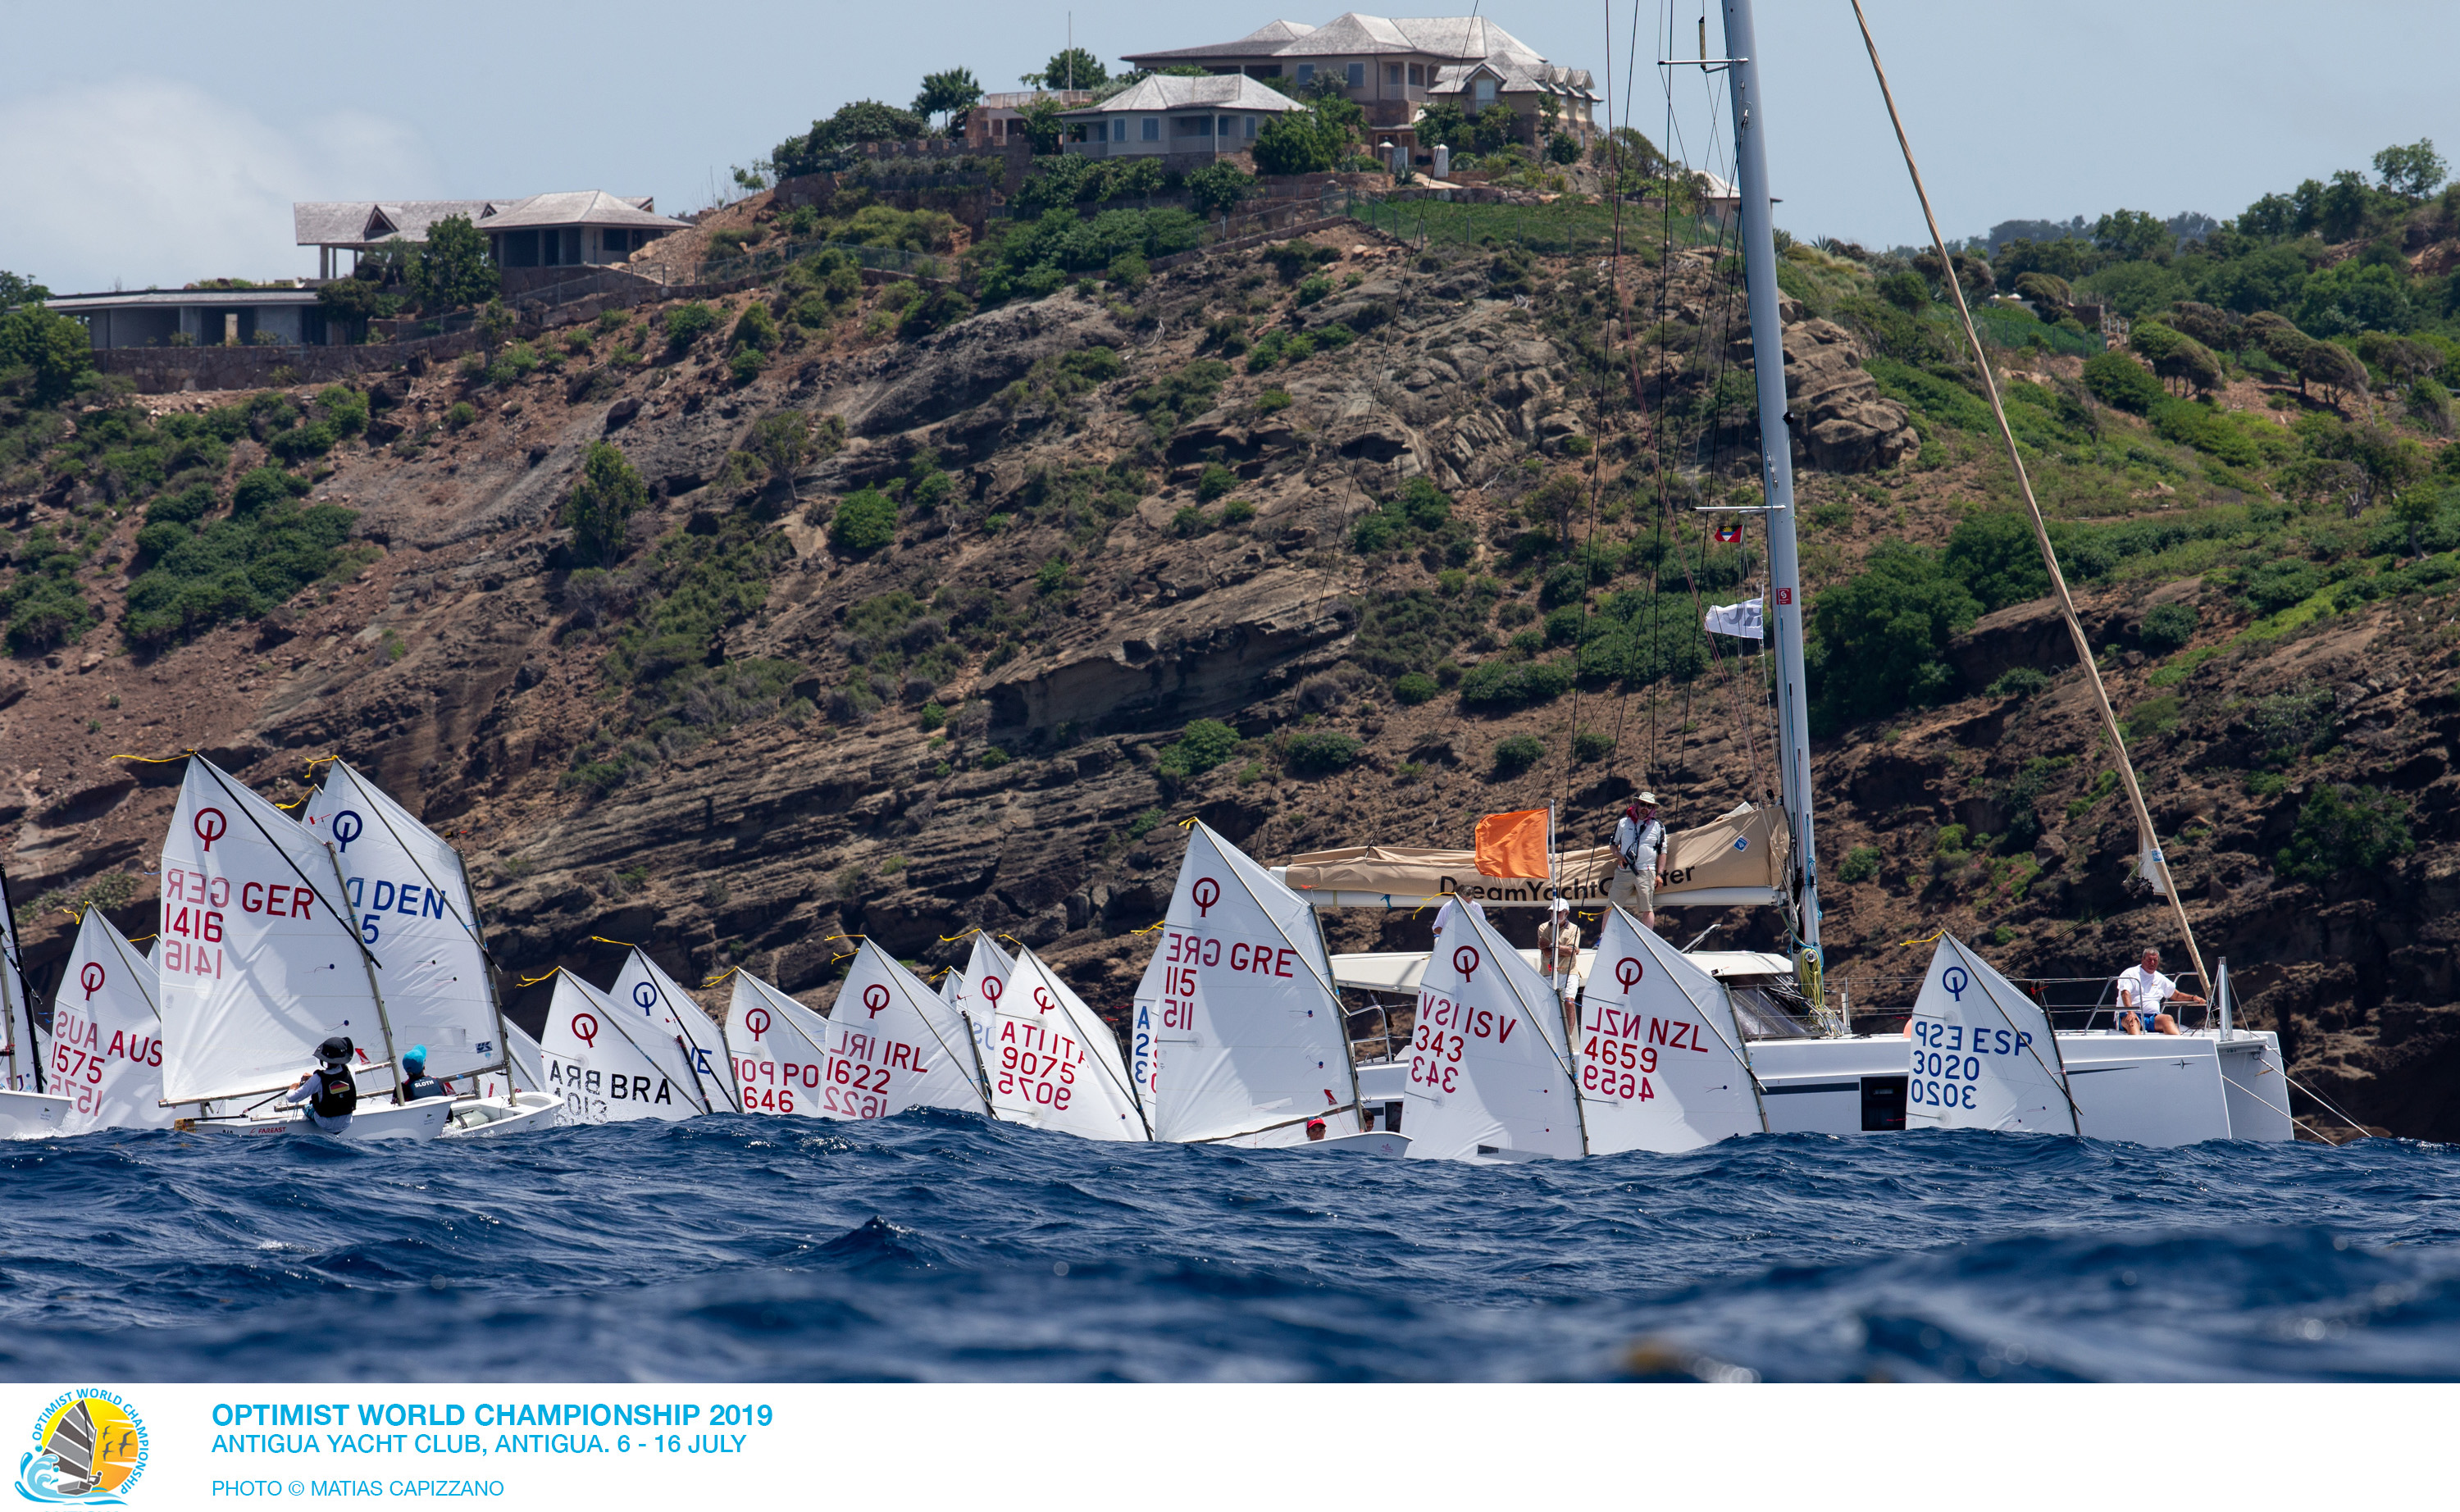 2019 Optimist World Championship, Antigua.